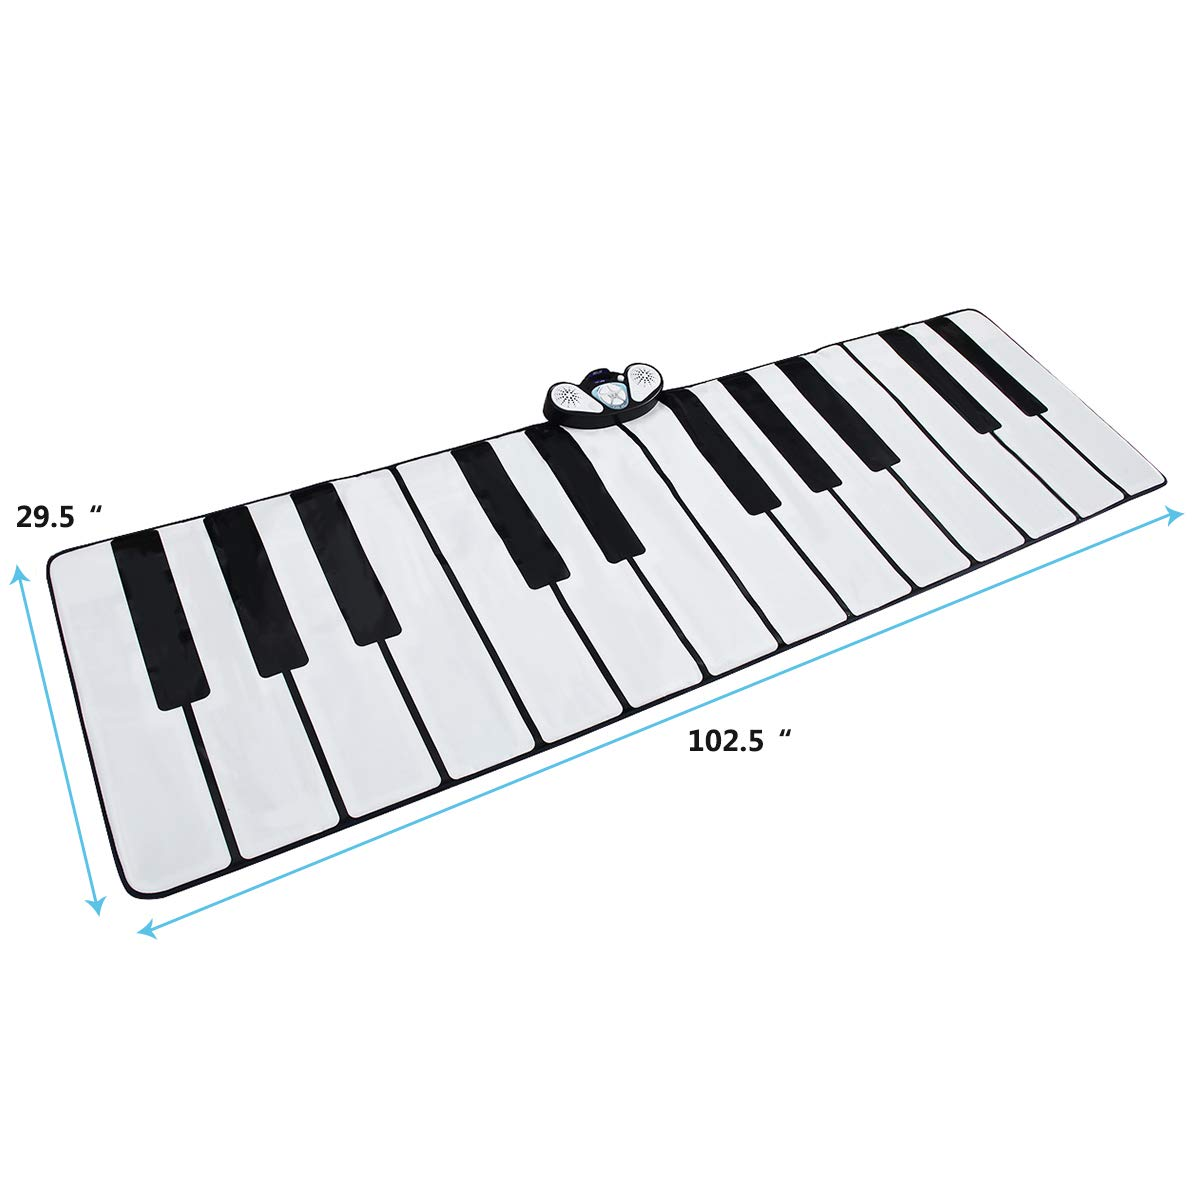 Costzon Giant Keyboard Playmat, 24 Keys Piano Play Mat, Foldable Activity Mat w/ 9 Selectable Musical Instruments, Play - Record - Playback - Demo - Tone Conversion Modes, Support MP3, Phone Play by Costzon (Image #7)